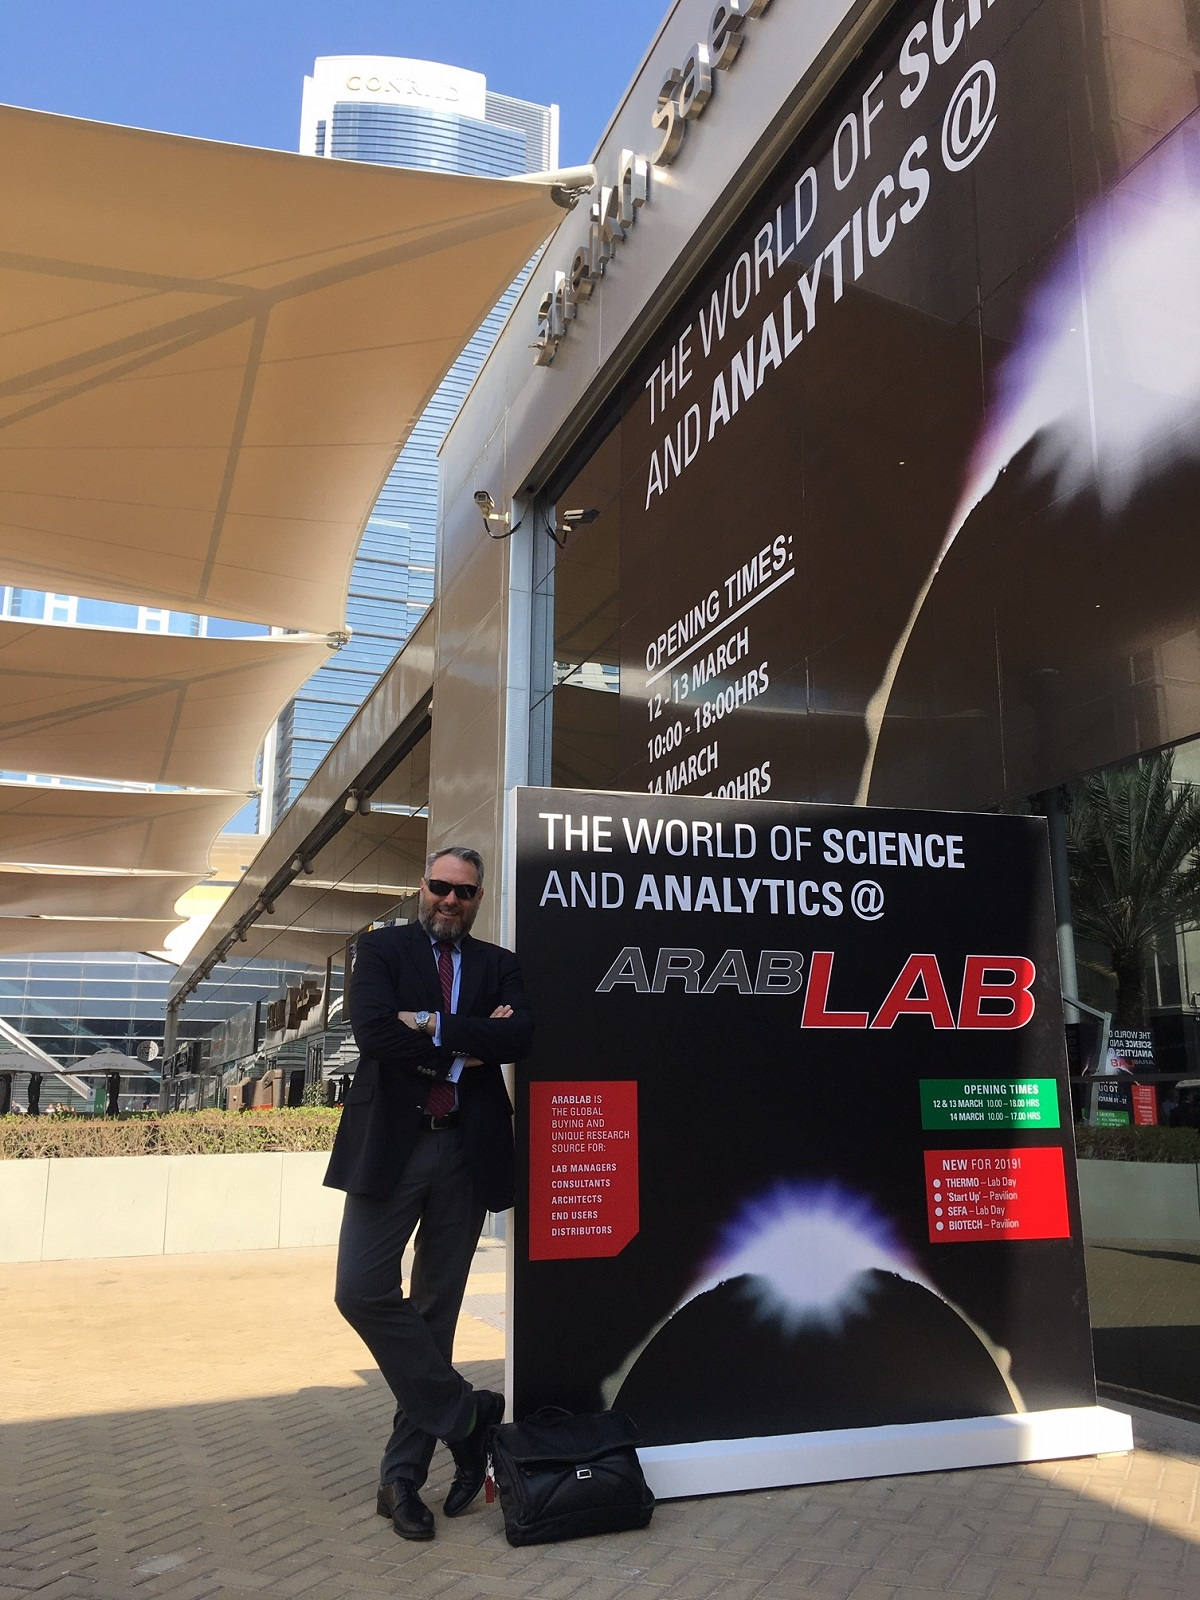 NanoWorld CEO Manfred Detterbeck at Arablab 2019